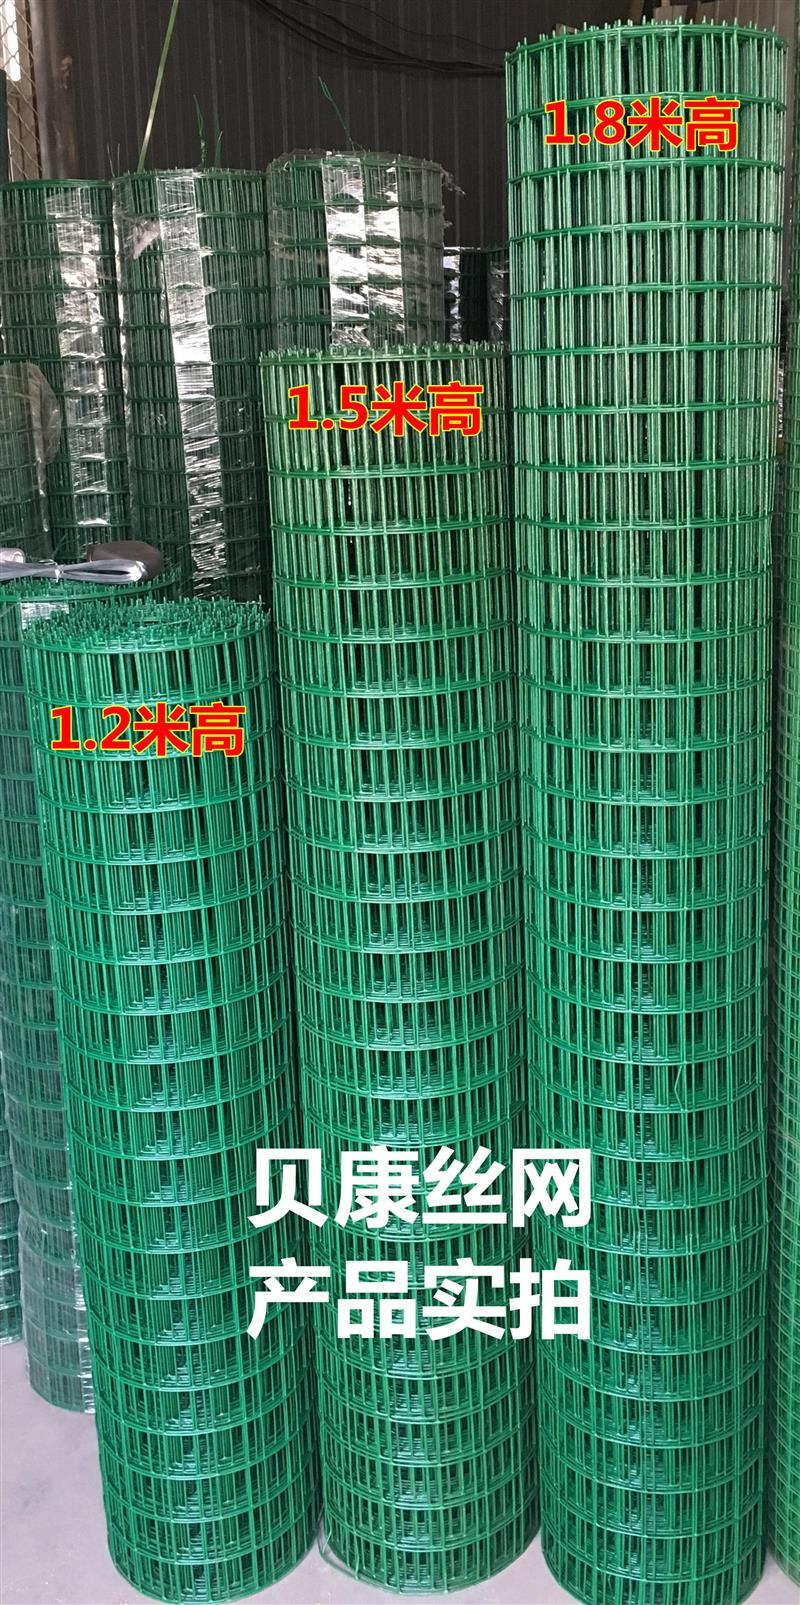 Highway guardrail net soaking in Holland network column wire net home breeding net poultry farm enclosure fence